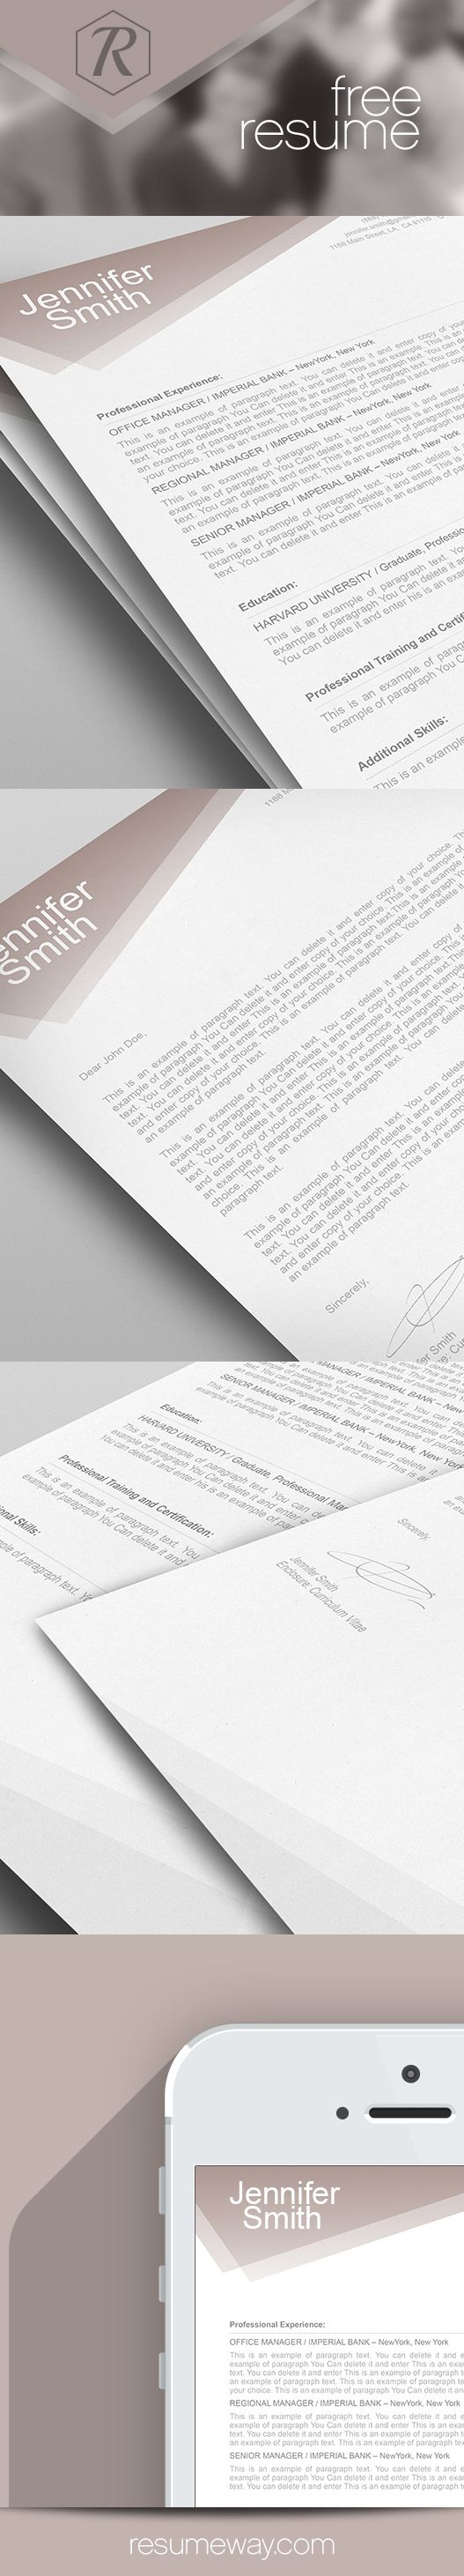 best images about resume templates a well resume template 1100010 premium line of resume cover letter templates edit